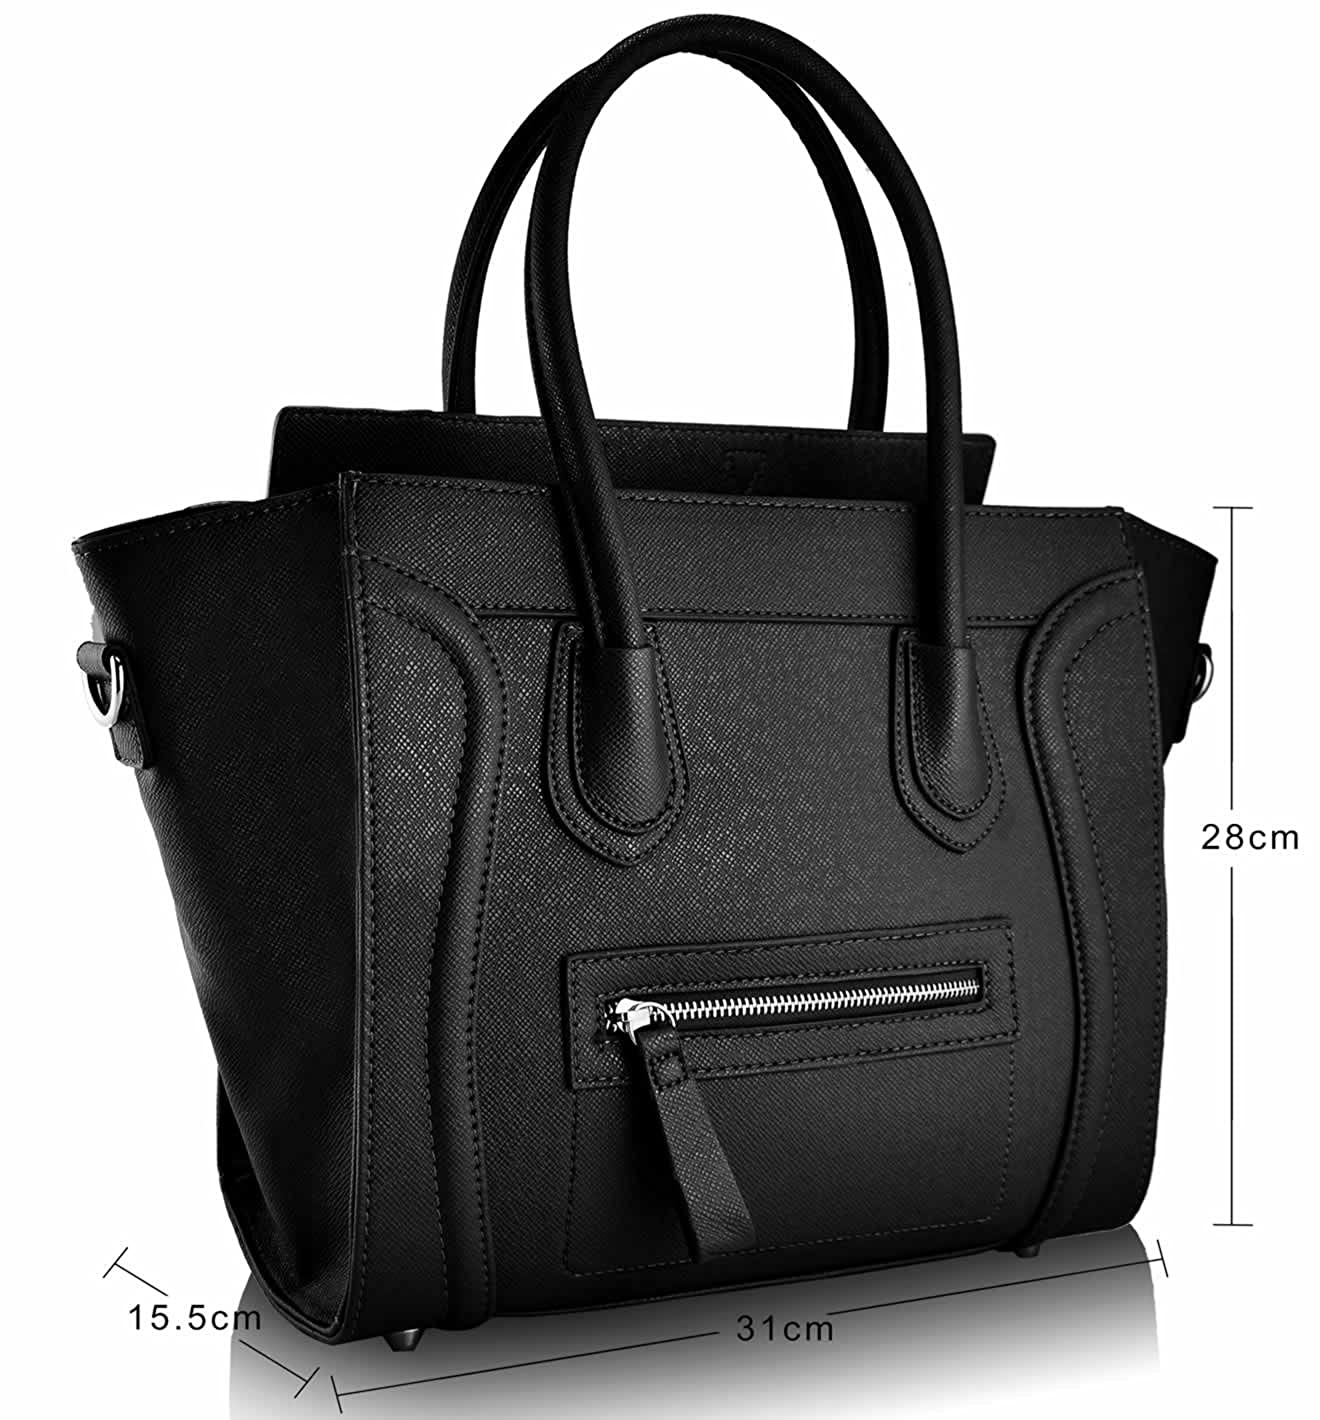 Women s Ladies Designer Tote Grab Smile Faux Leather Celebrity Shoulder Bags  Handbags (Black Smile)  Amazon.co.uk  Shoes   Bags 9450a835c9